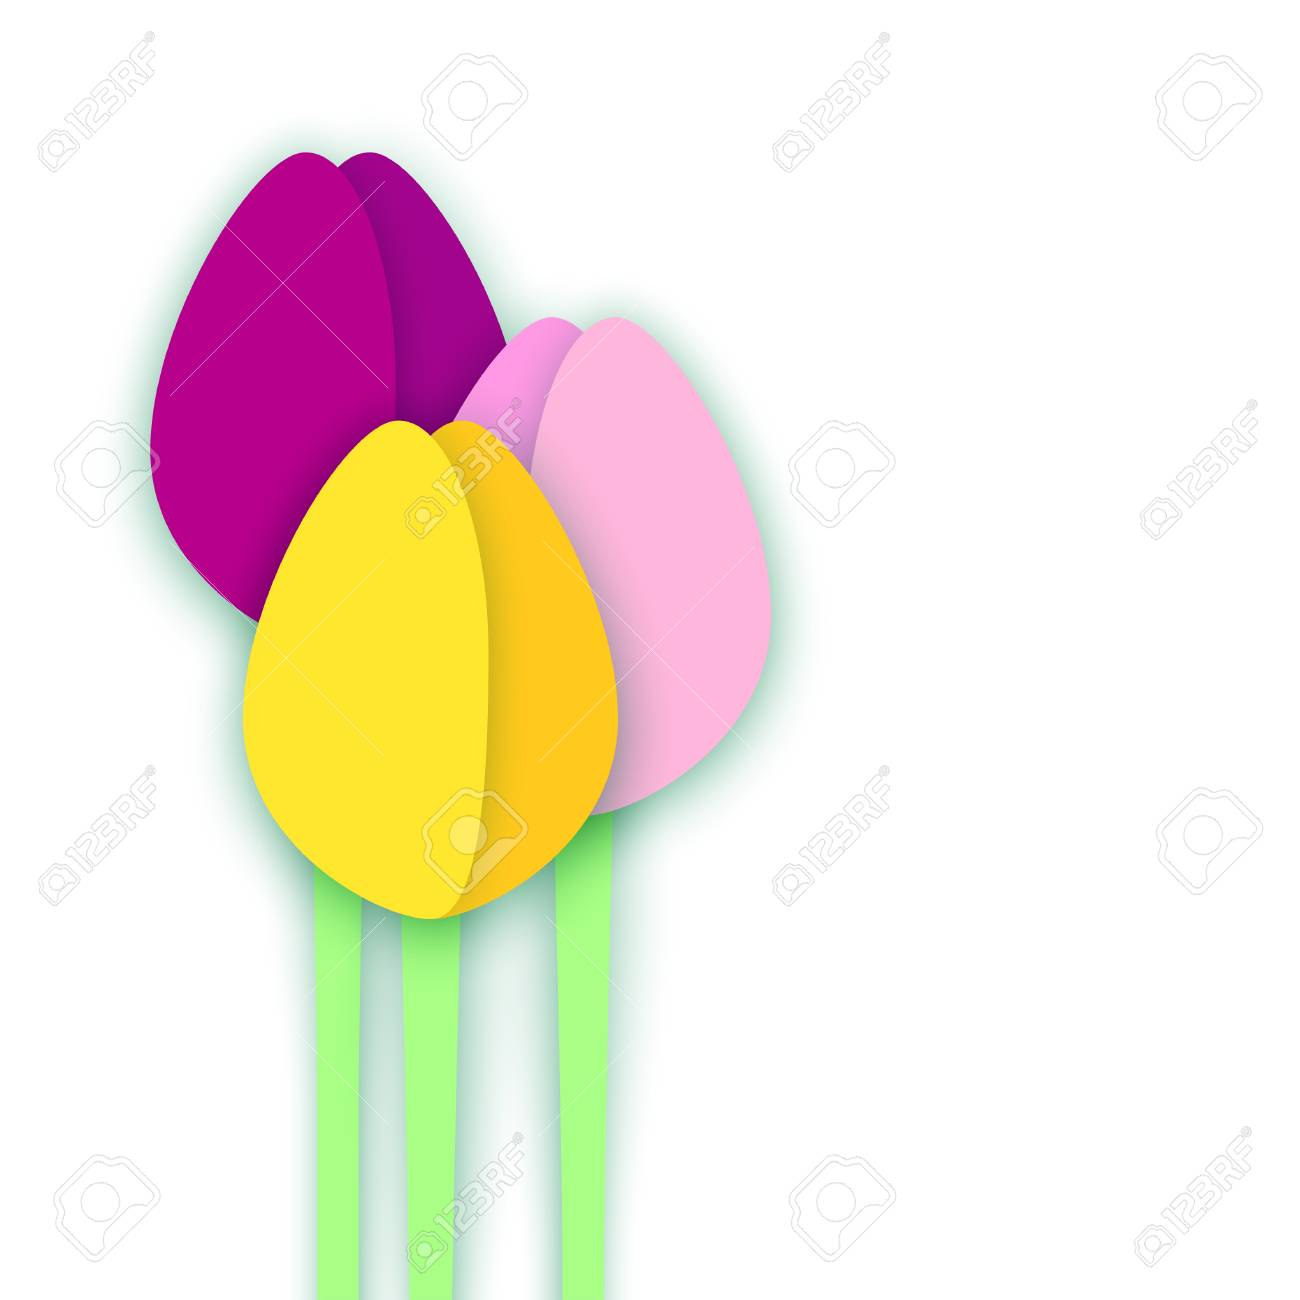 three paper cut tulips on white background collage with shadows